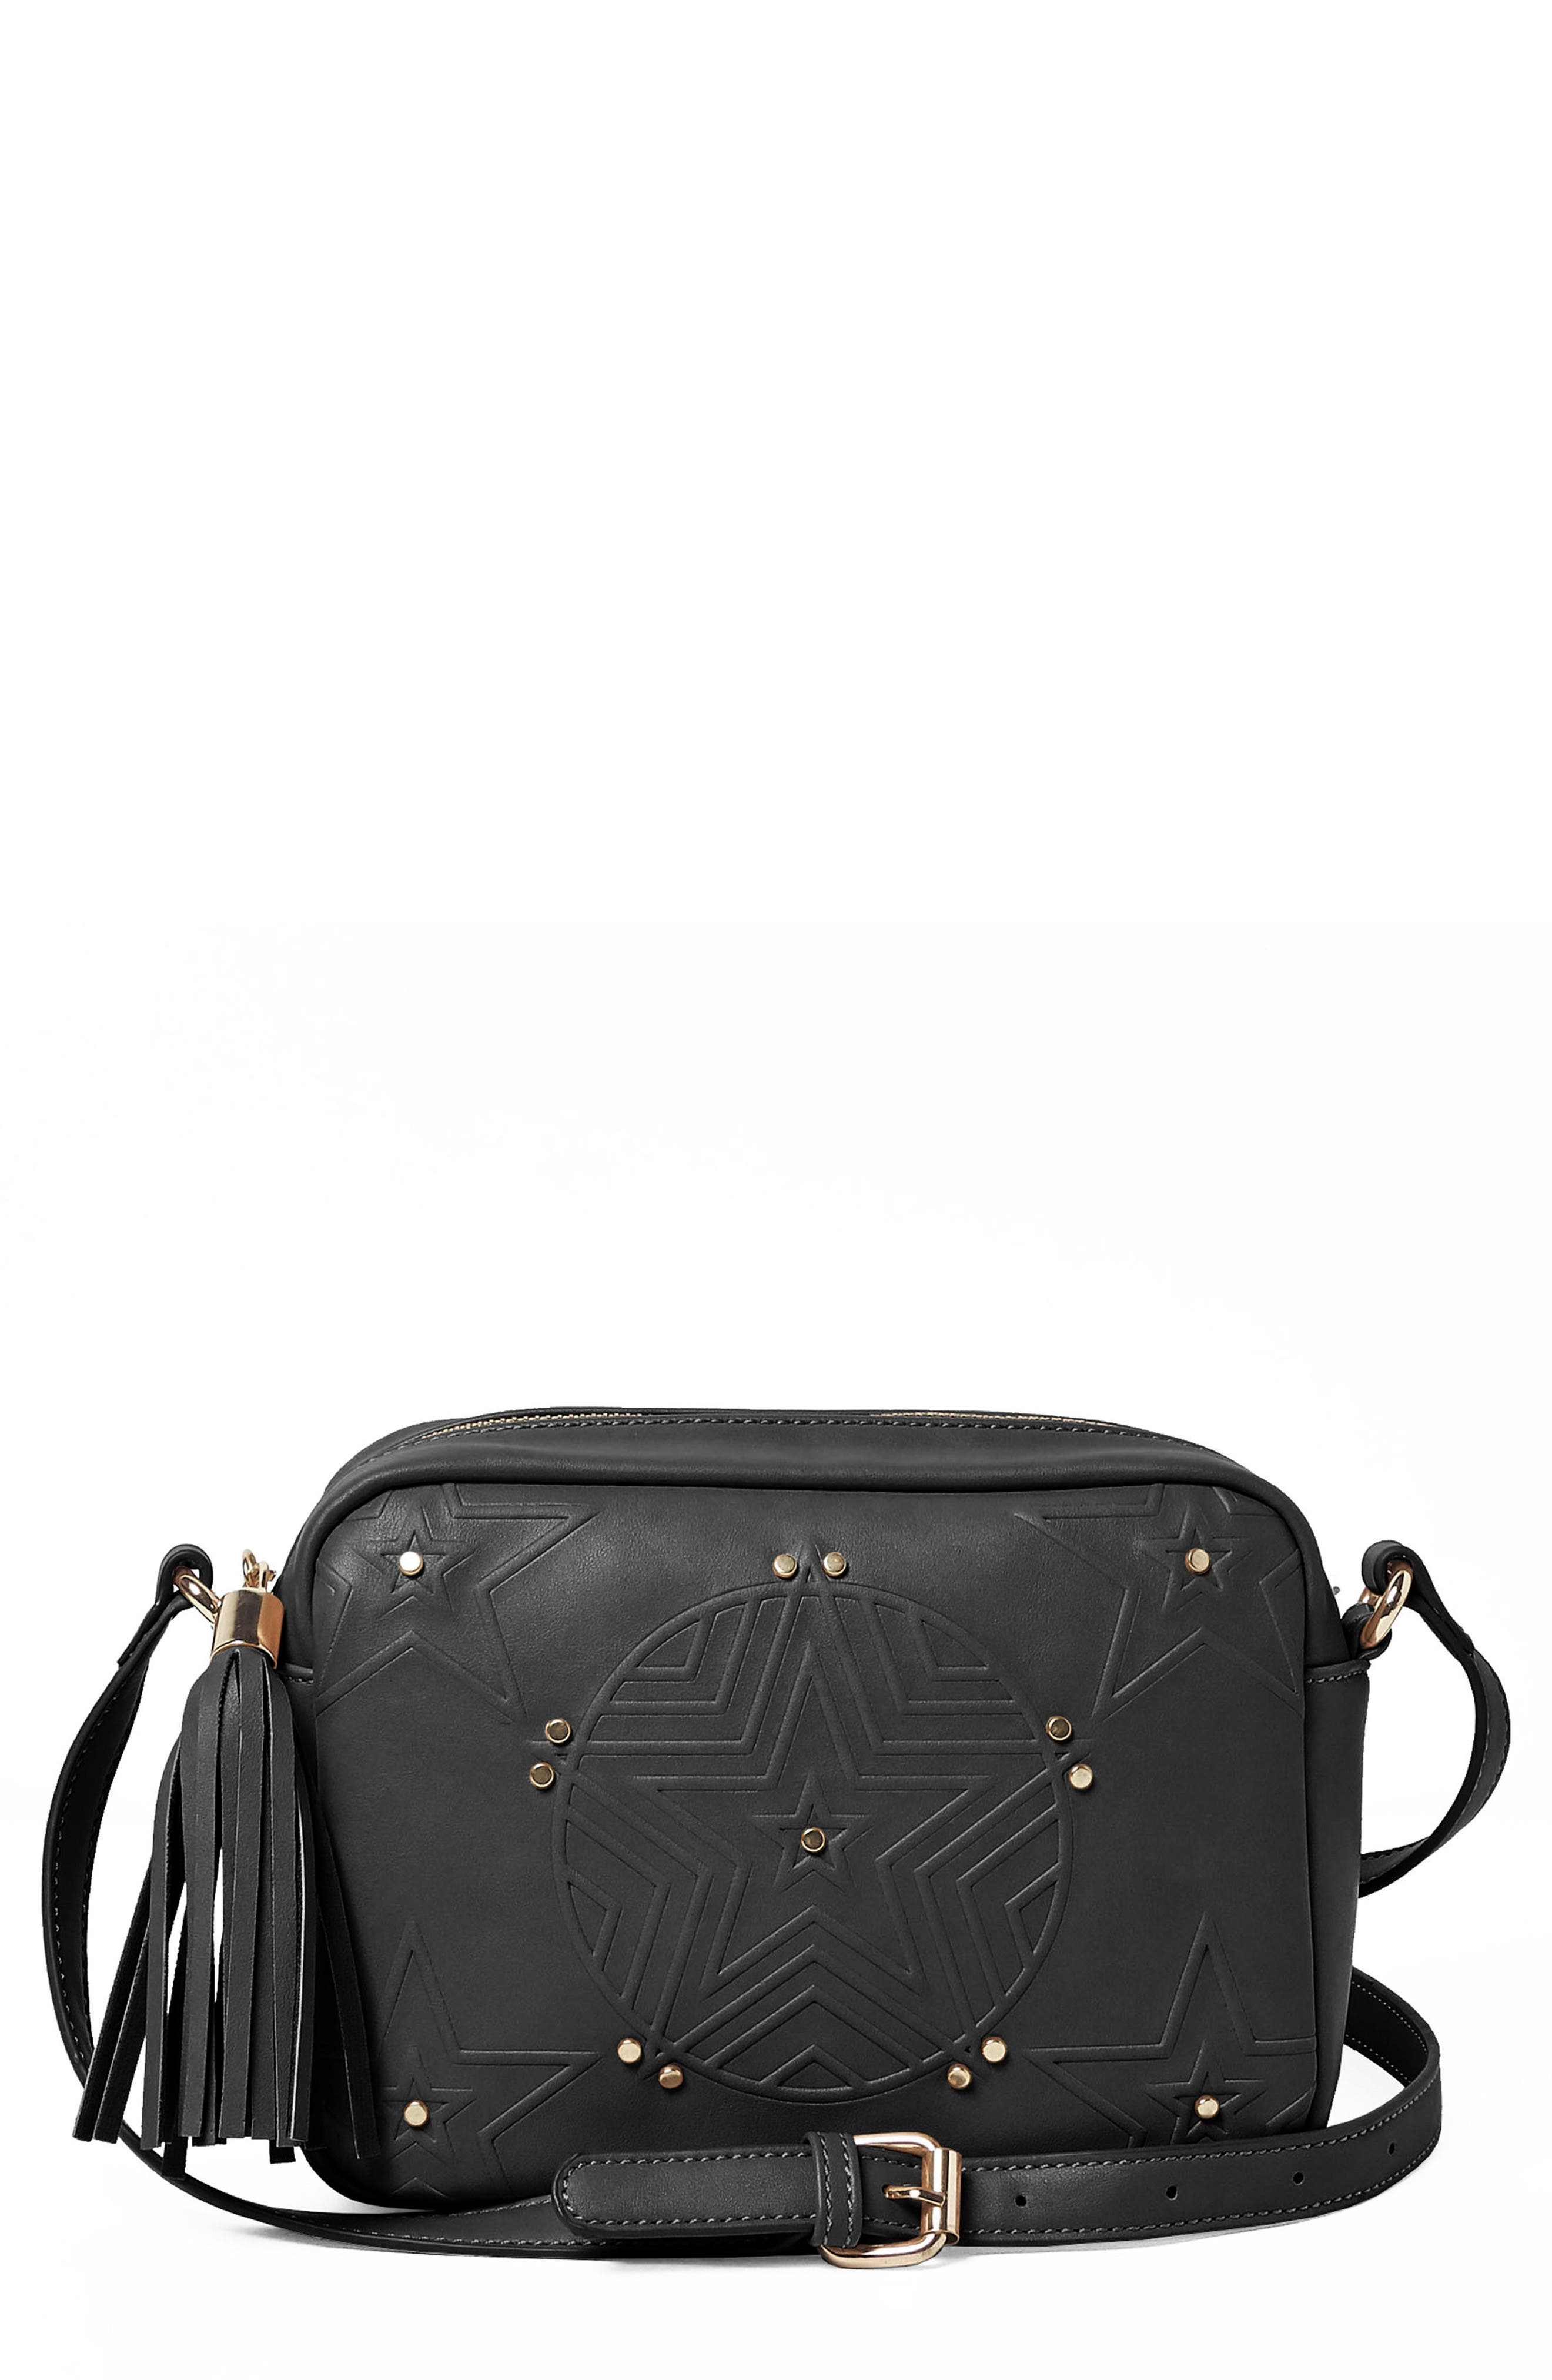 Stargazer Vegan Leather Crossbody Bag,                             Main thumbnail 1, color,                             Black